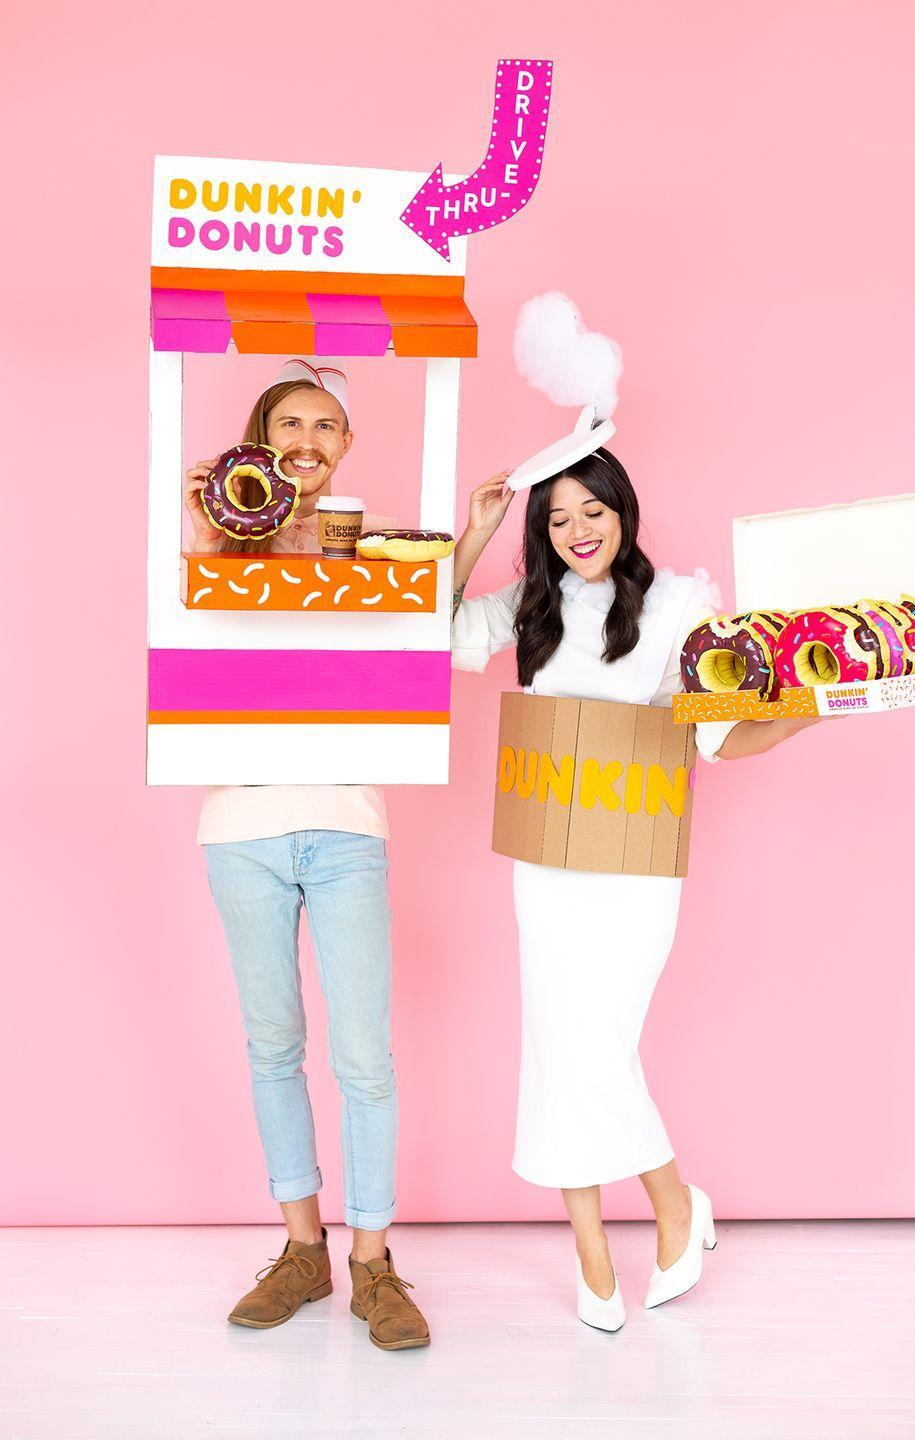 """<p>Who doesn't love coffee and donuts? No matter how you take your coffee, this clever idea will be an absolute hit at any party.</p><p><strong>Get the tutorial at <a href=""""http://www.awwsam.com/2018/10/diy-hot-coffee-couples-costume.html"""" rel=""""nofollow noopener"""" target=""""_blank"""" data-ylk=""""slk:Aww Sam"""" class=""""link rapid-noclick-resp"""">Aww Sam</a>.</strong></p><p><a class=""""link rapid-noclick-resp"""" href=""""https://www.amazon.com/Mokoru-Womens-Casual-Pencil-Bodycon/dp/B07JHMS7NZ/ref=sr_1_4?dchild=1&keywords=white+long+sleeve+dress+women&qid=1591988006&sr=8-4&tag=syn-yahoo-20&ascsubtag=%5Bartid%7C10050.g.21349110%5Bsrc%7Cyahoo-us"""" rel=""""nofollow noopener"""" target=""""_blank"""" data-ylk=""""slk:SHOP WHITE DRESSES"""">SHOP WHITE DRESSES</a></p>"""